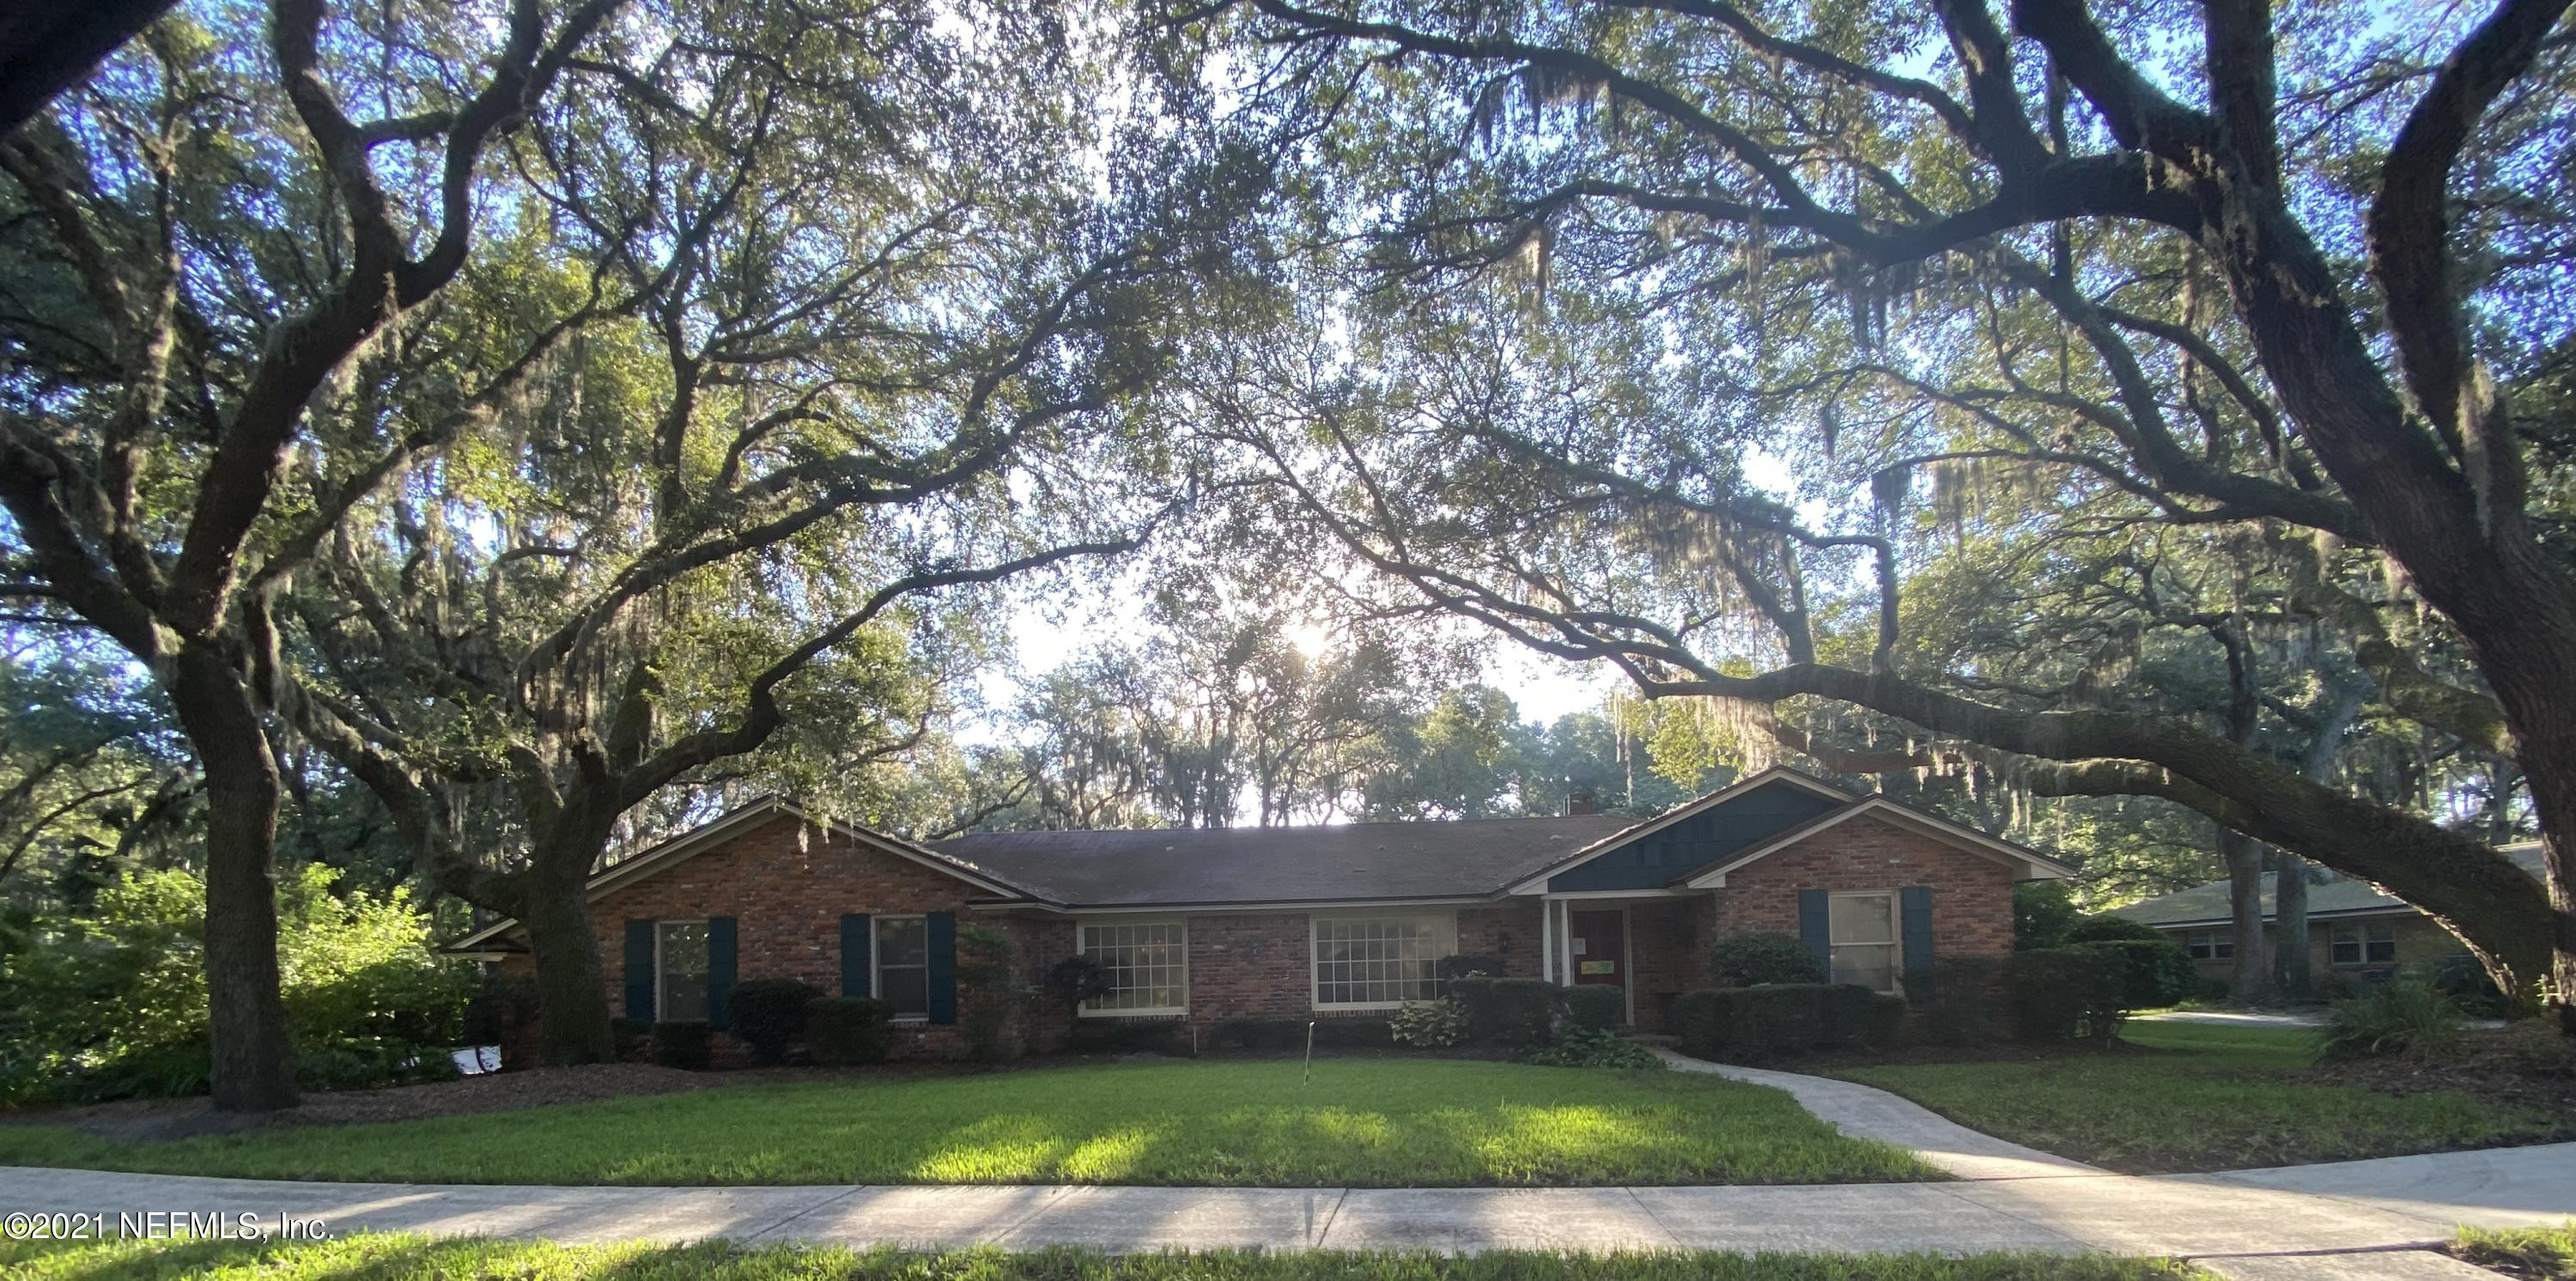 This home with its layout and enclosed patio is waiting for you!.  The home sits on almost a 1/2 acre of land.  There is a estate sale going on 8/13-8/16 and the public is welcome to stop in and check out this home with no pressure.